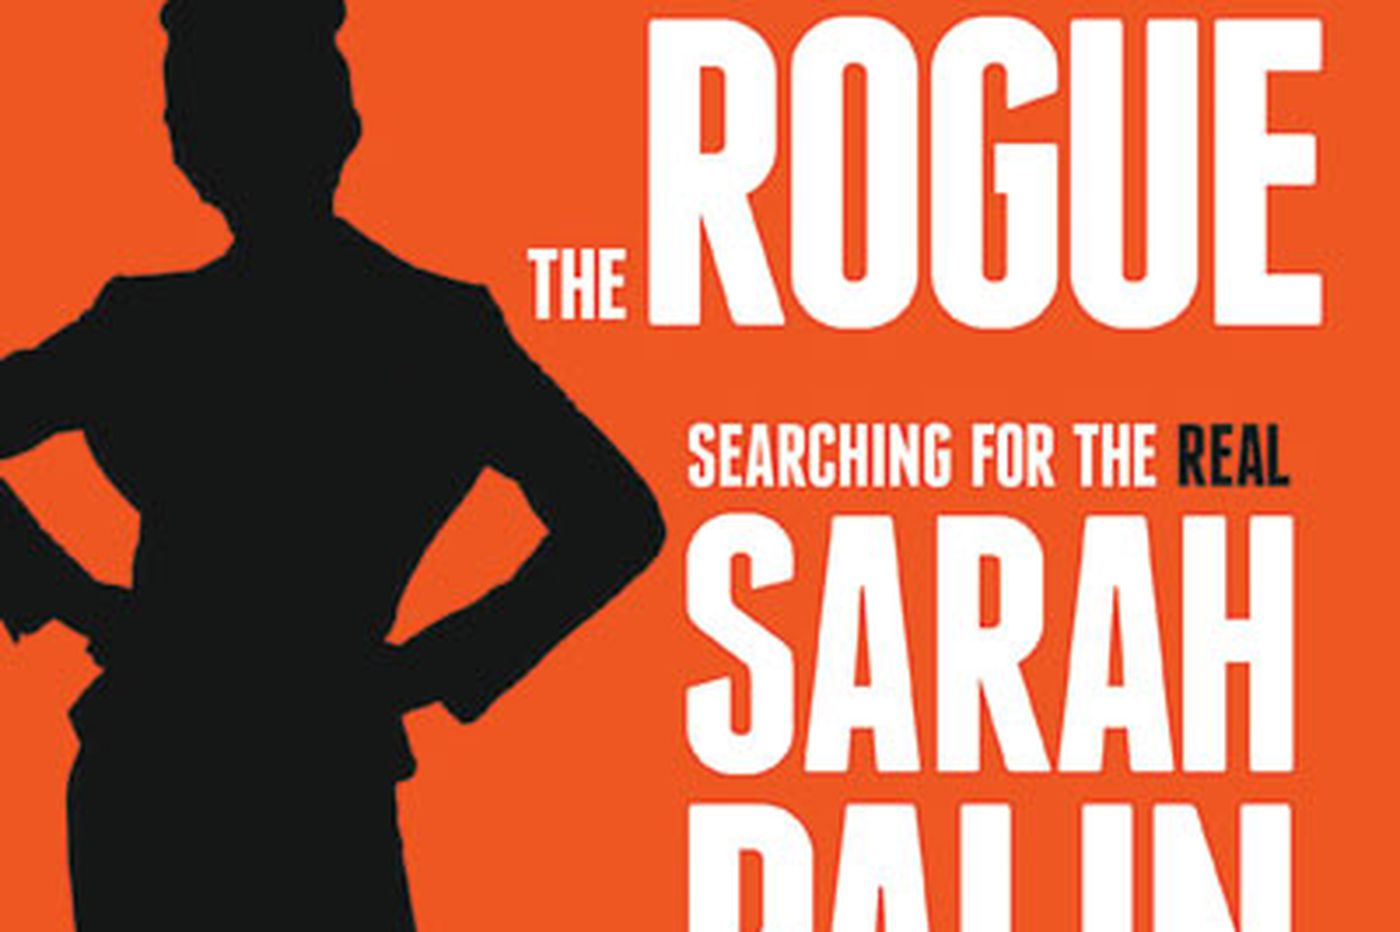 'The Rogue': Pummeling Palin with trash talk